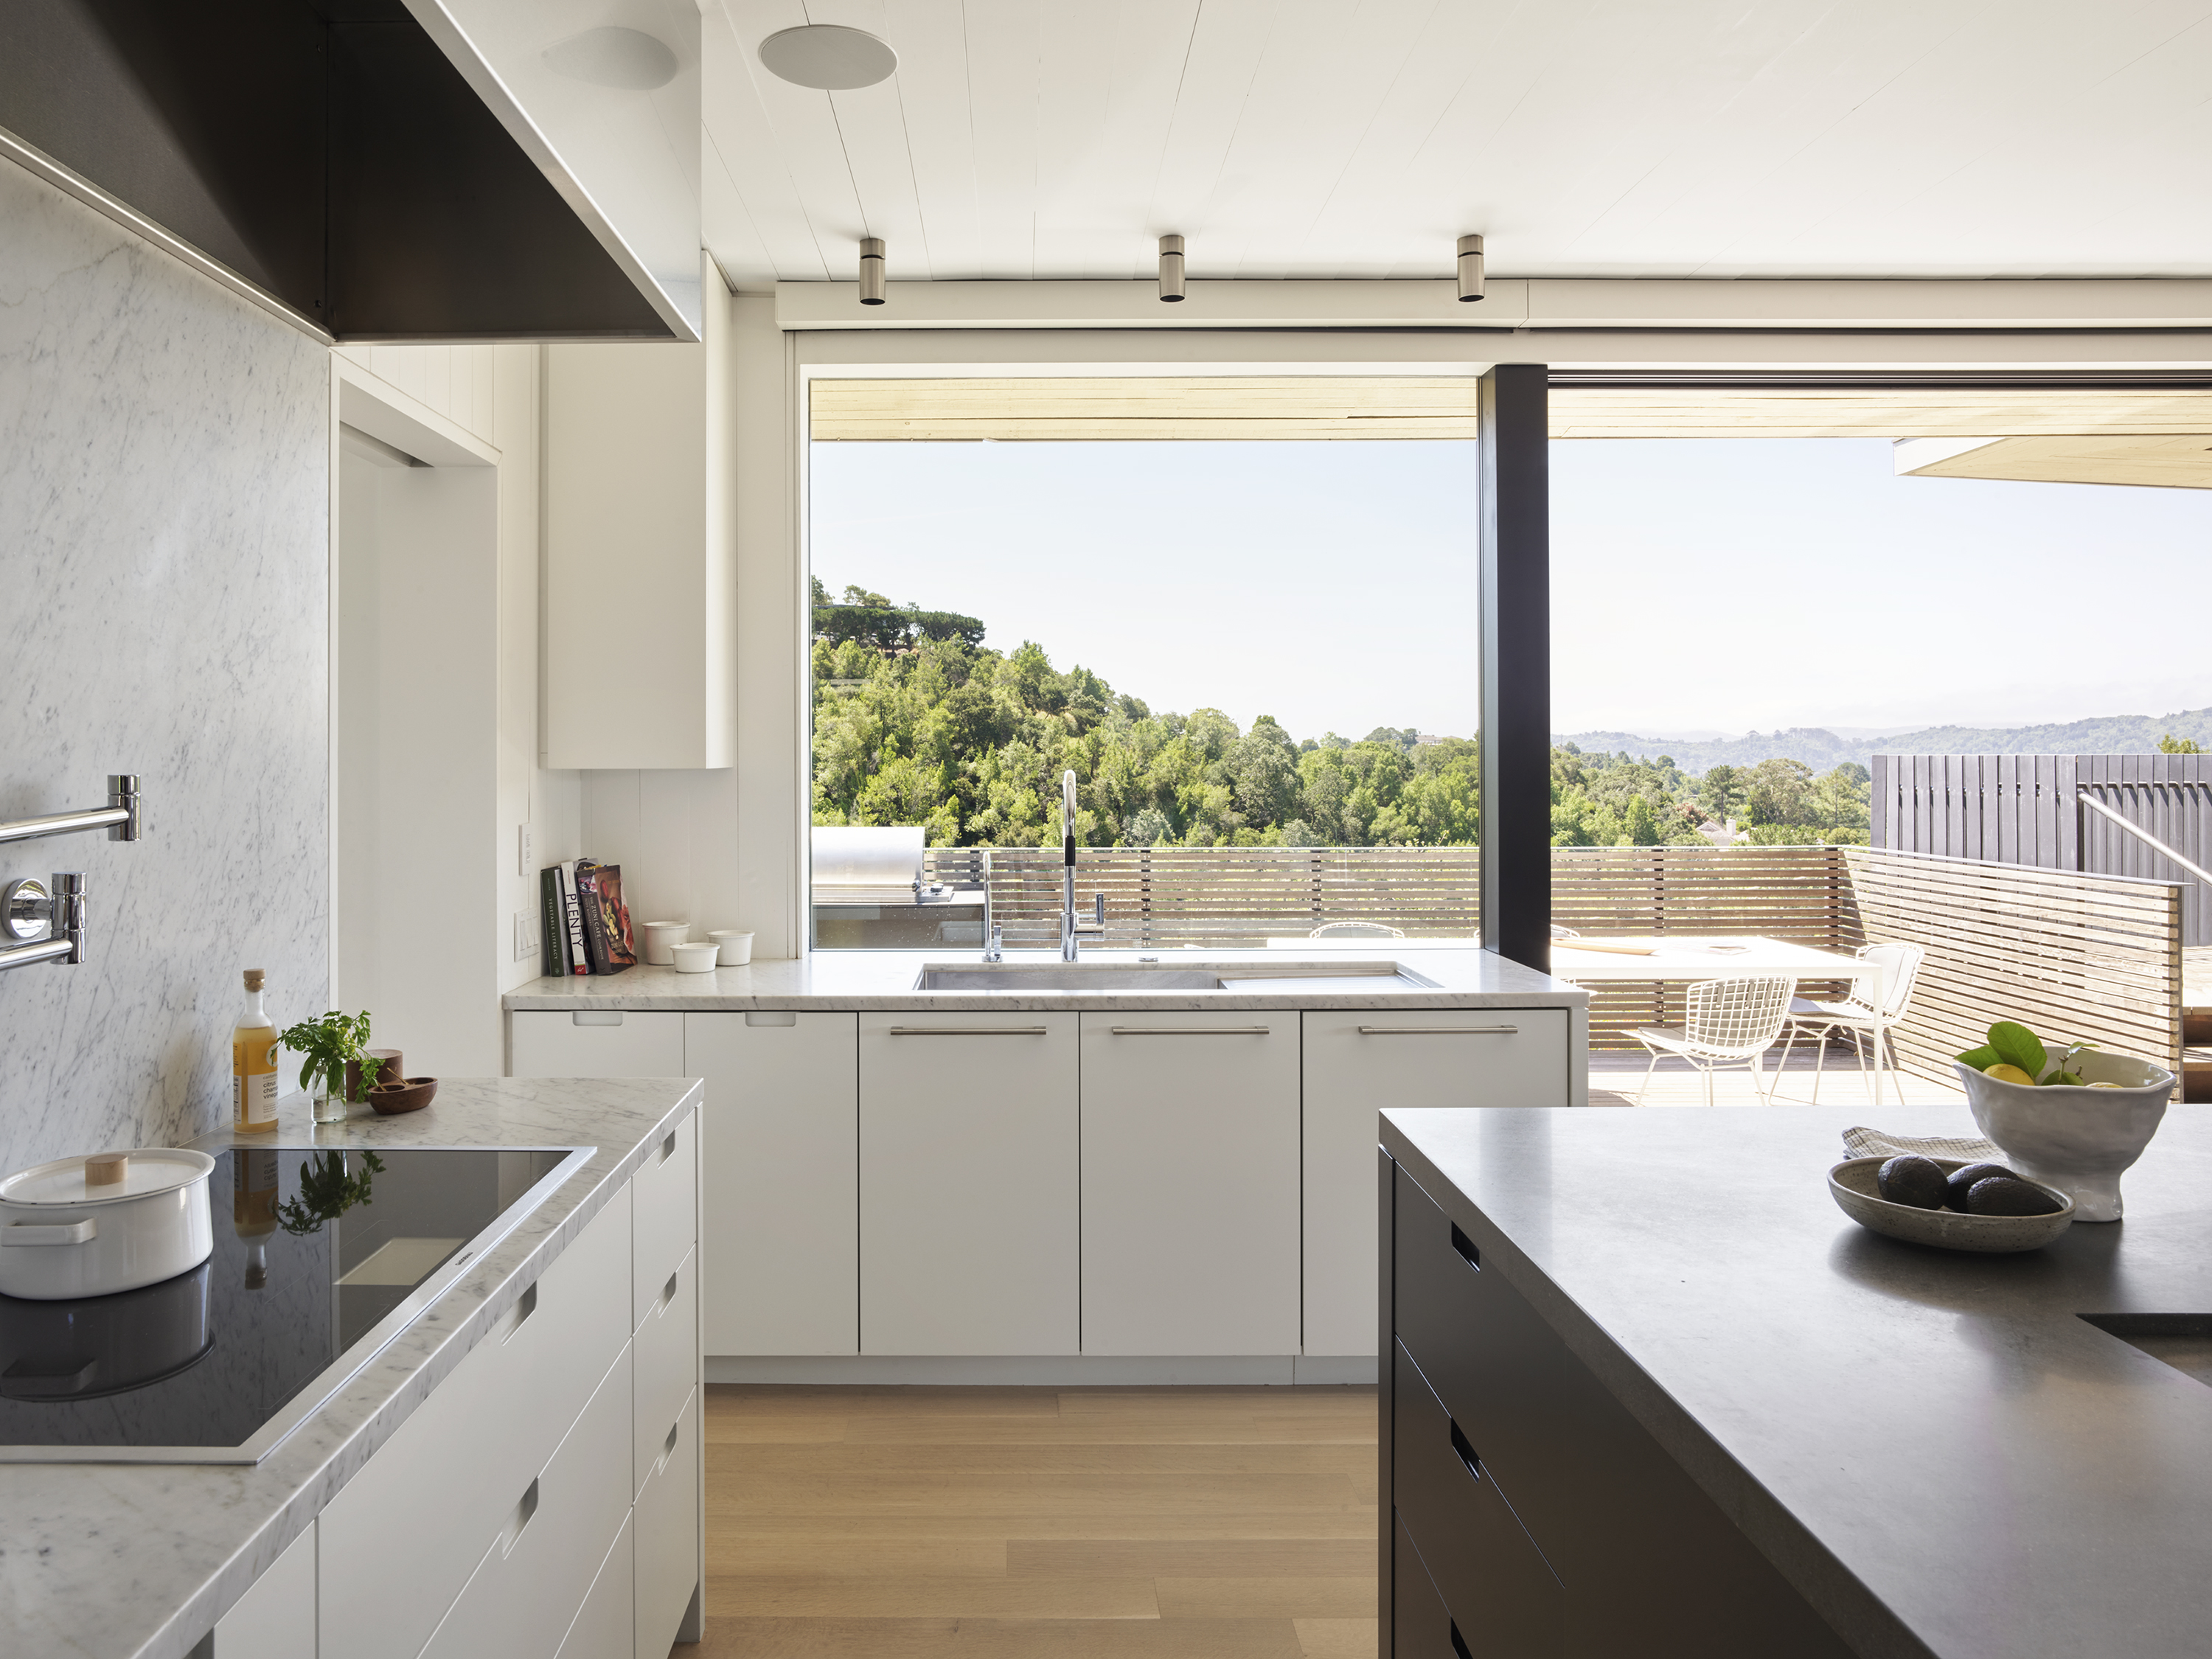 Herspring House renovated in Kentfield California, inside view of kitchen area, sink, kitchen cabinets, kitchen drawers, kitchen island and view of terrace.